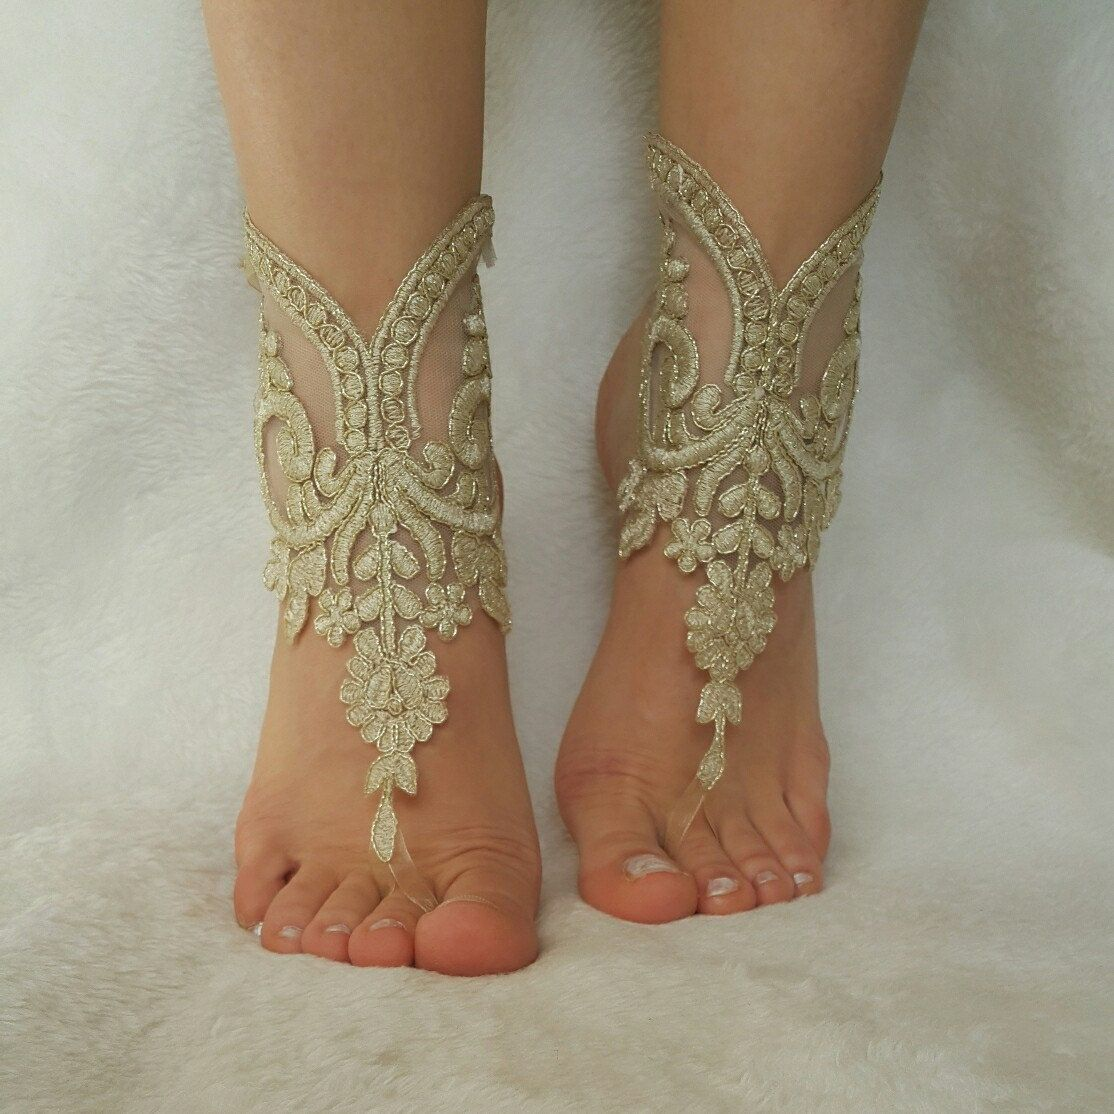 Cappuccino Gold Frame Beach Wedding Sandals Steampunk Foot Accessory Anklet Country Barefeet Bellydance Free Ship Bridesmaid Gift